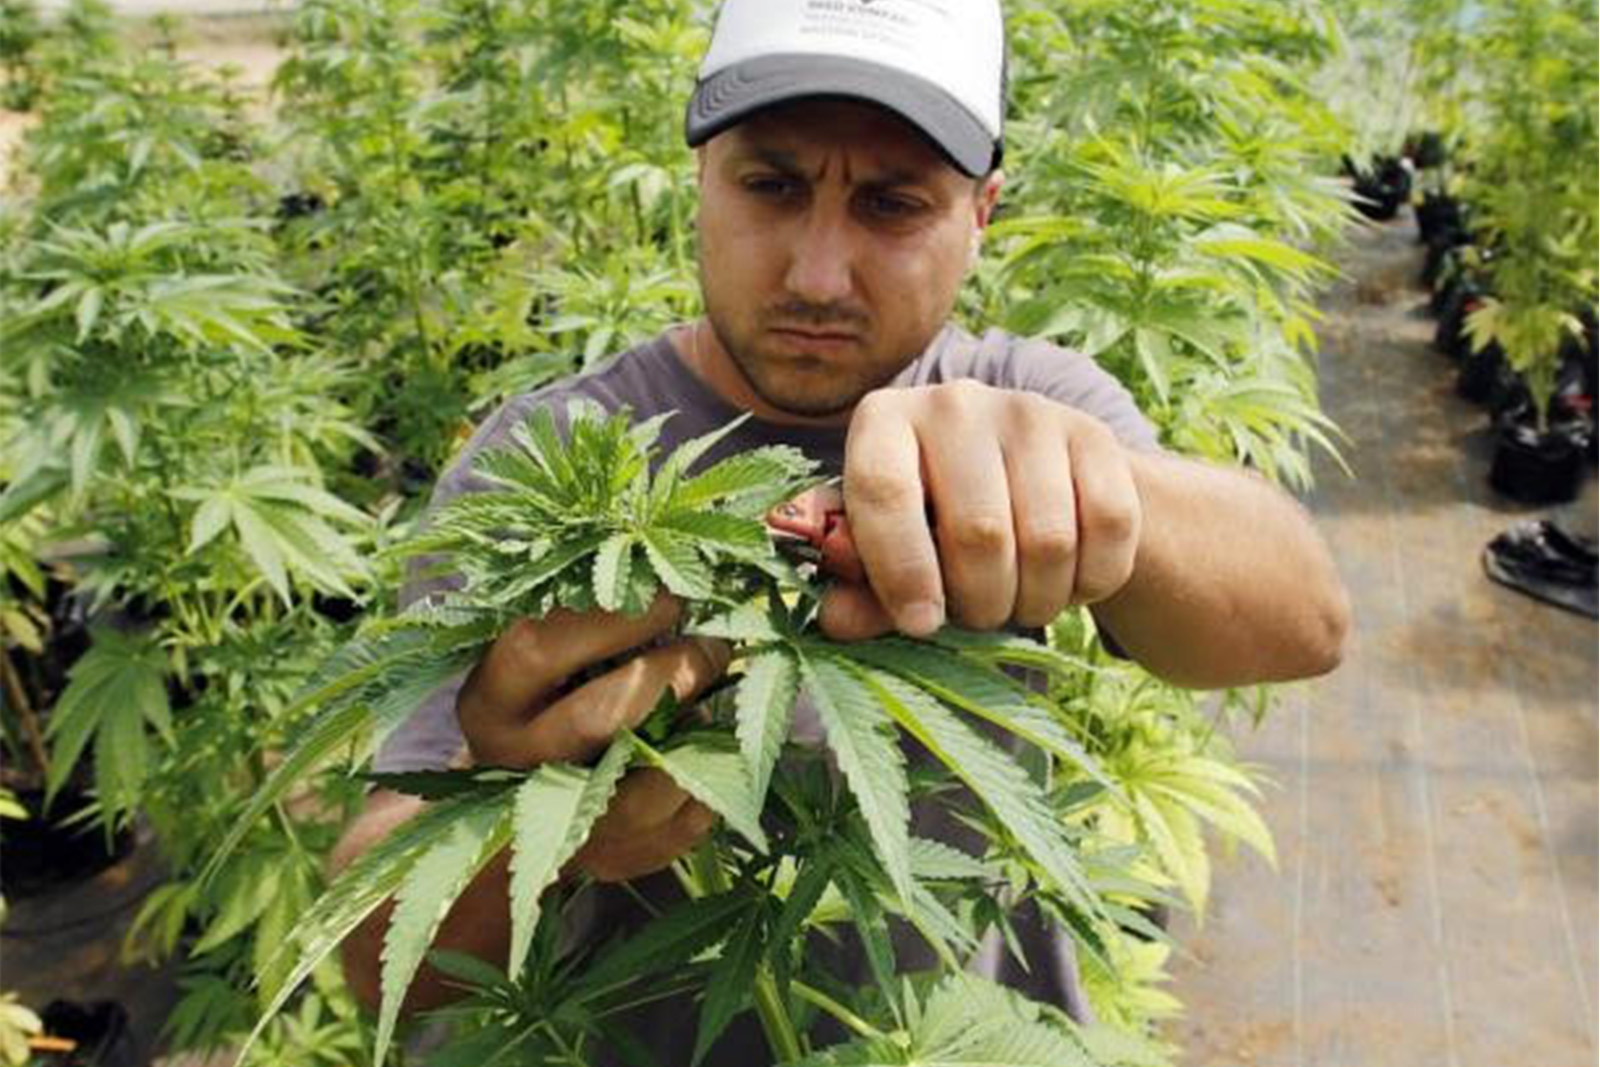 Market leader with thirty years experience in the cannabis sector enters market